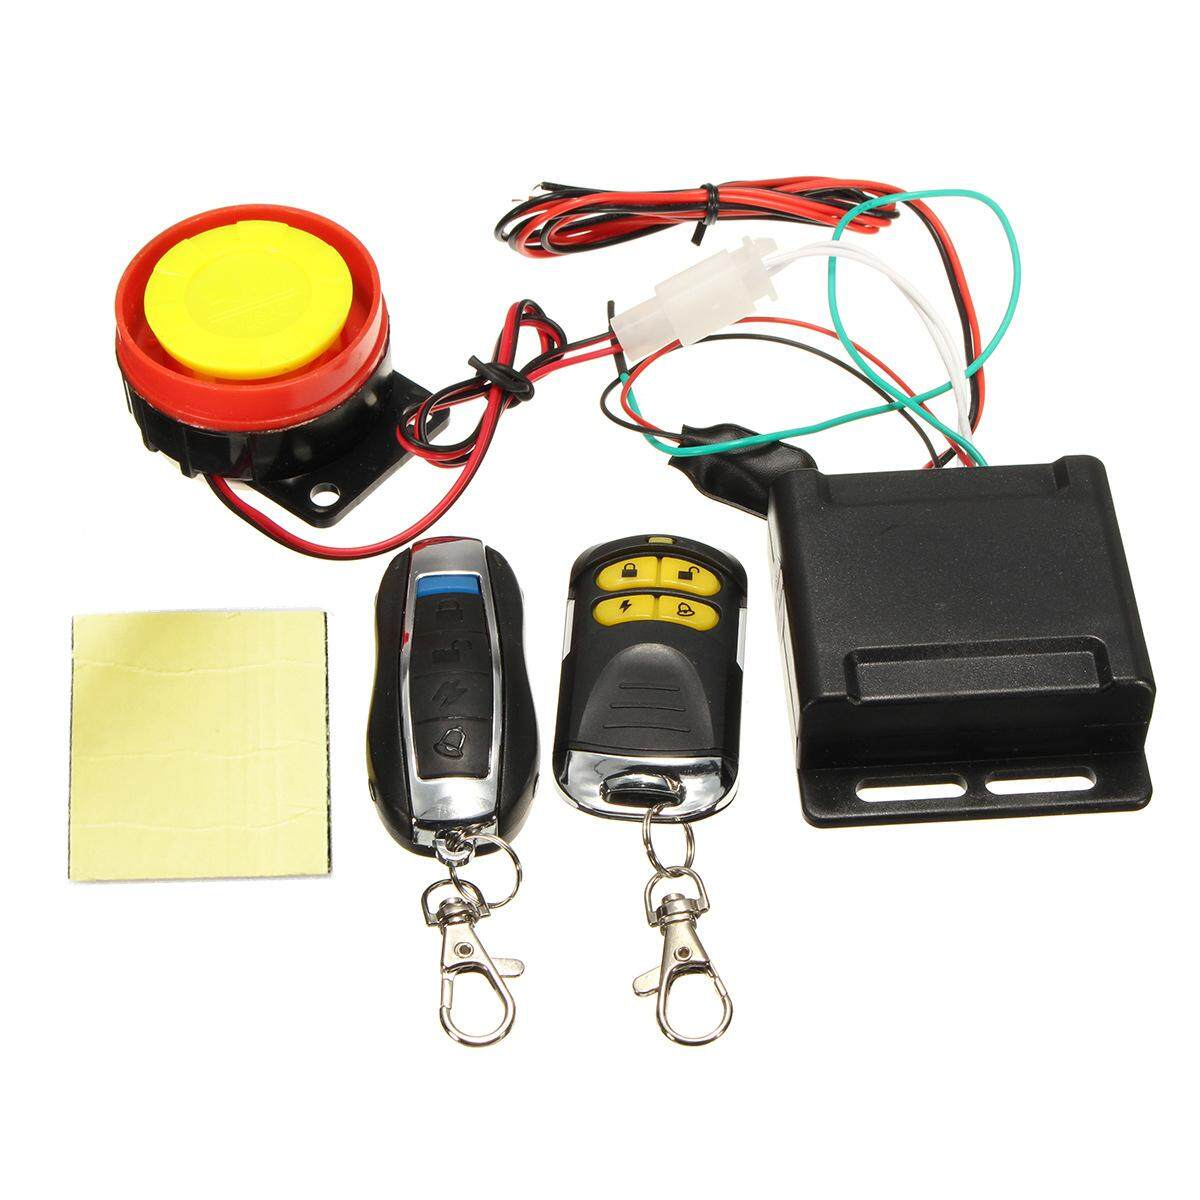 Scooter Car High-Power Police Siren Safety Alarm System Remote Control 12V Anti-theft Motorcycle Bike Specification: Dual Remote Control